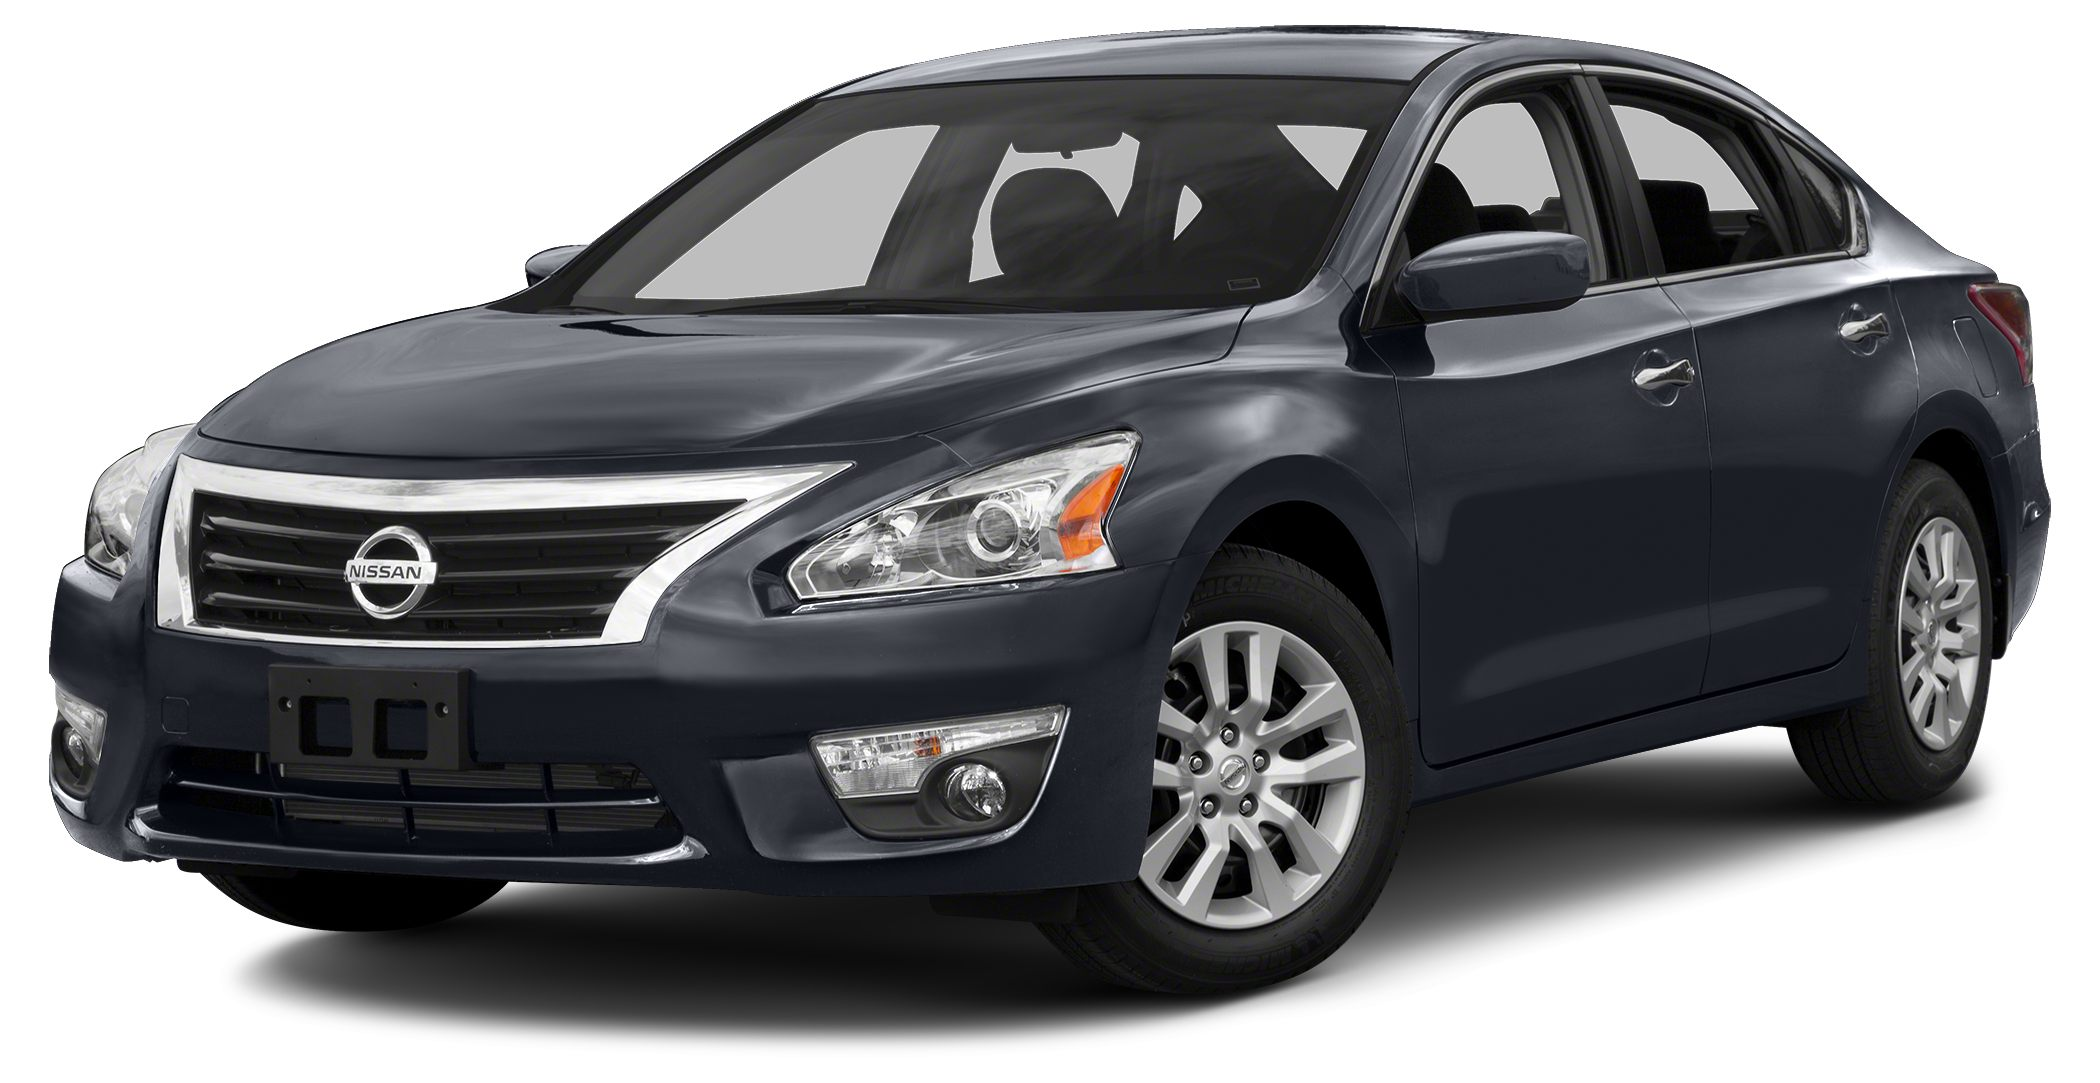 2014 Nissan Altima 25 S 25 S trim WAS 15788 FUEL EFFICIENT 38 MPG Hwy27 MPG City CD Player